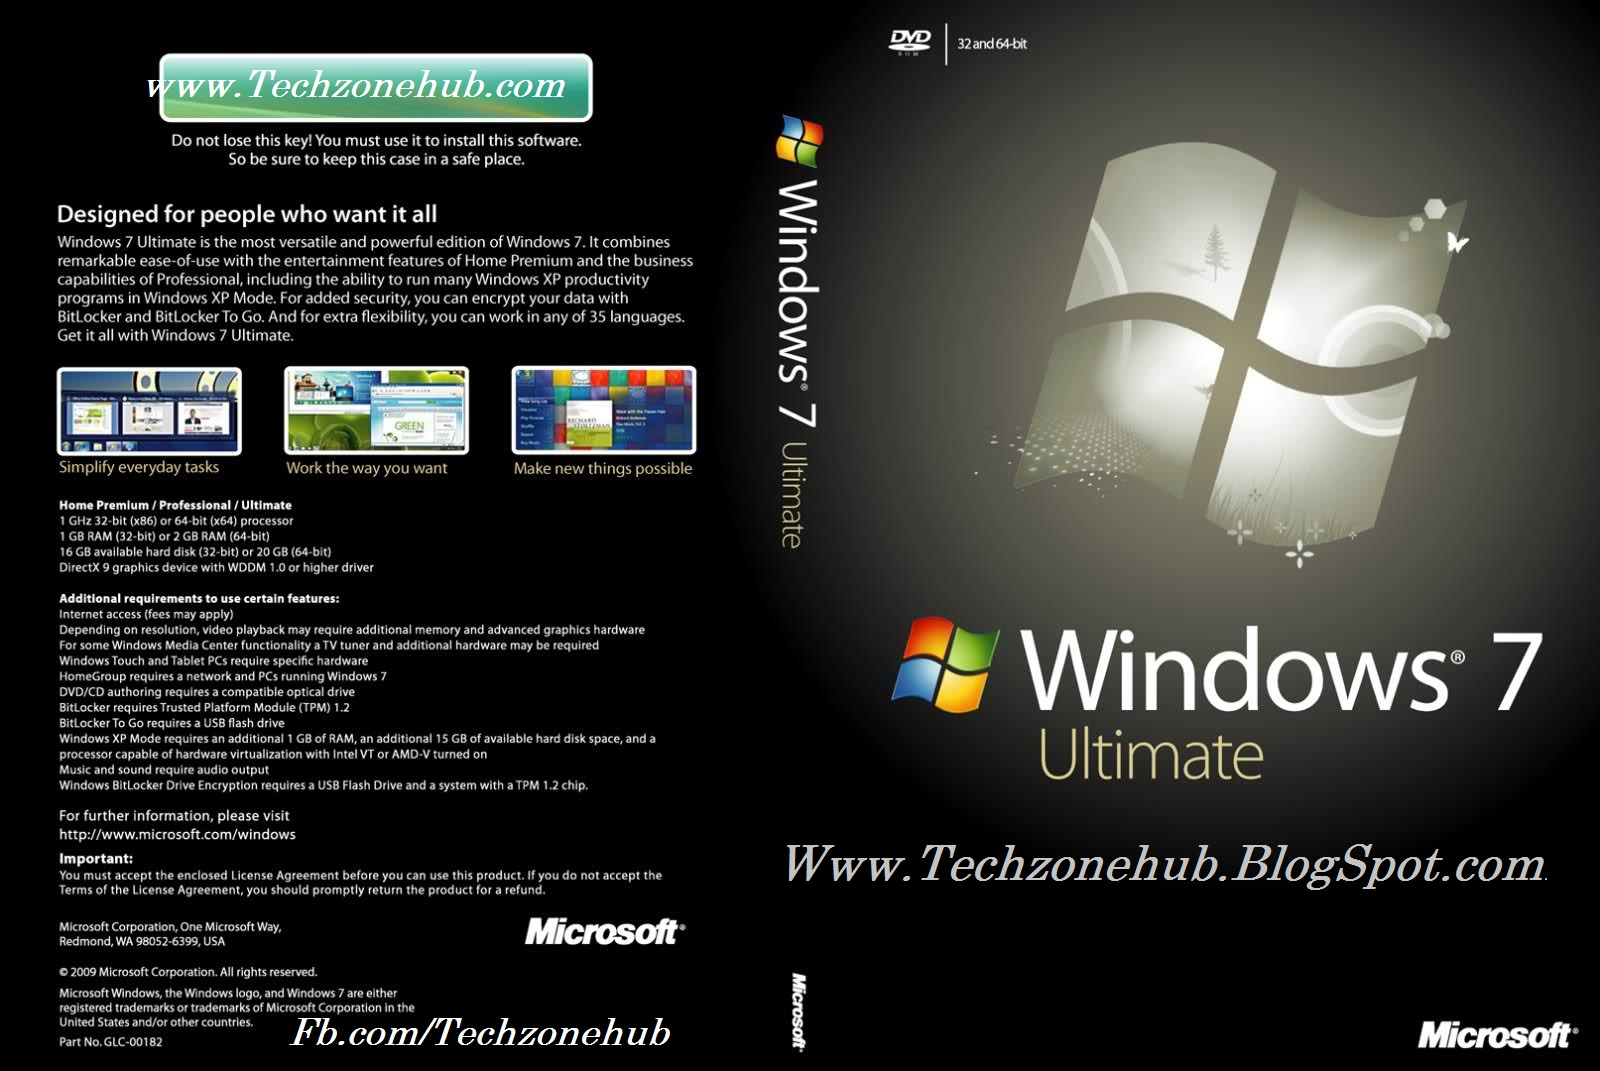 Microsoft windows 7 sp1 ultimate july 2018 x86 softcnet. Com.